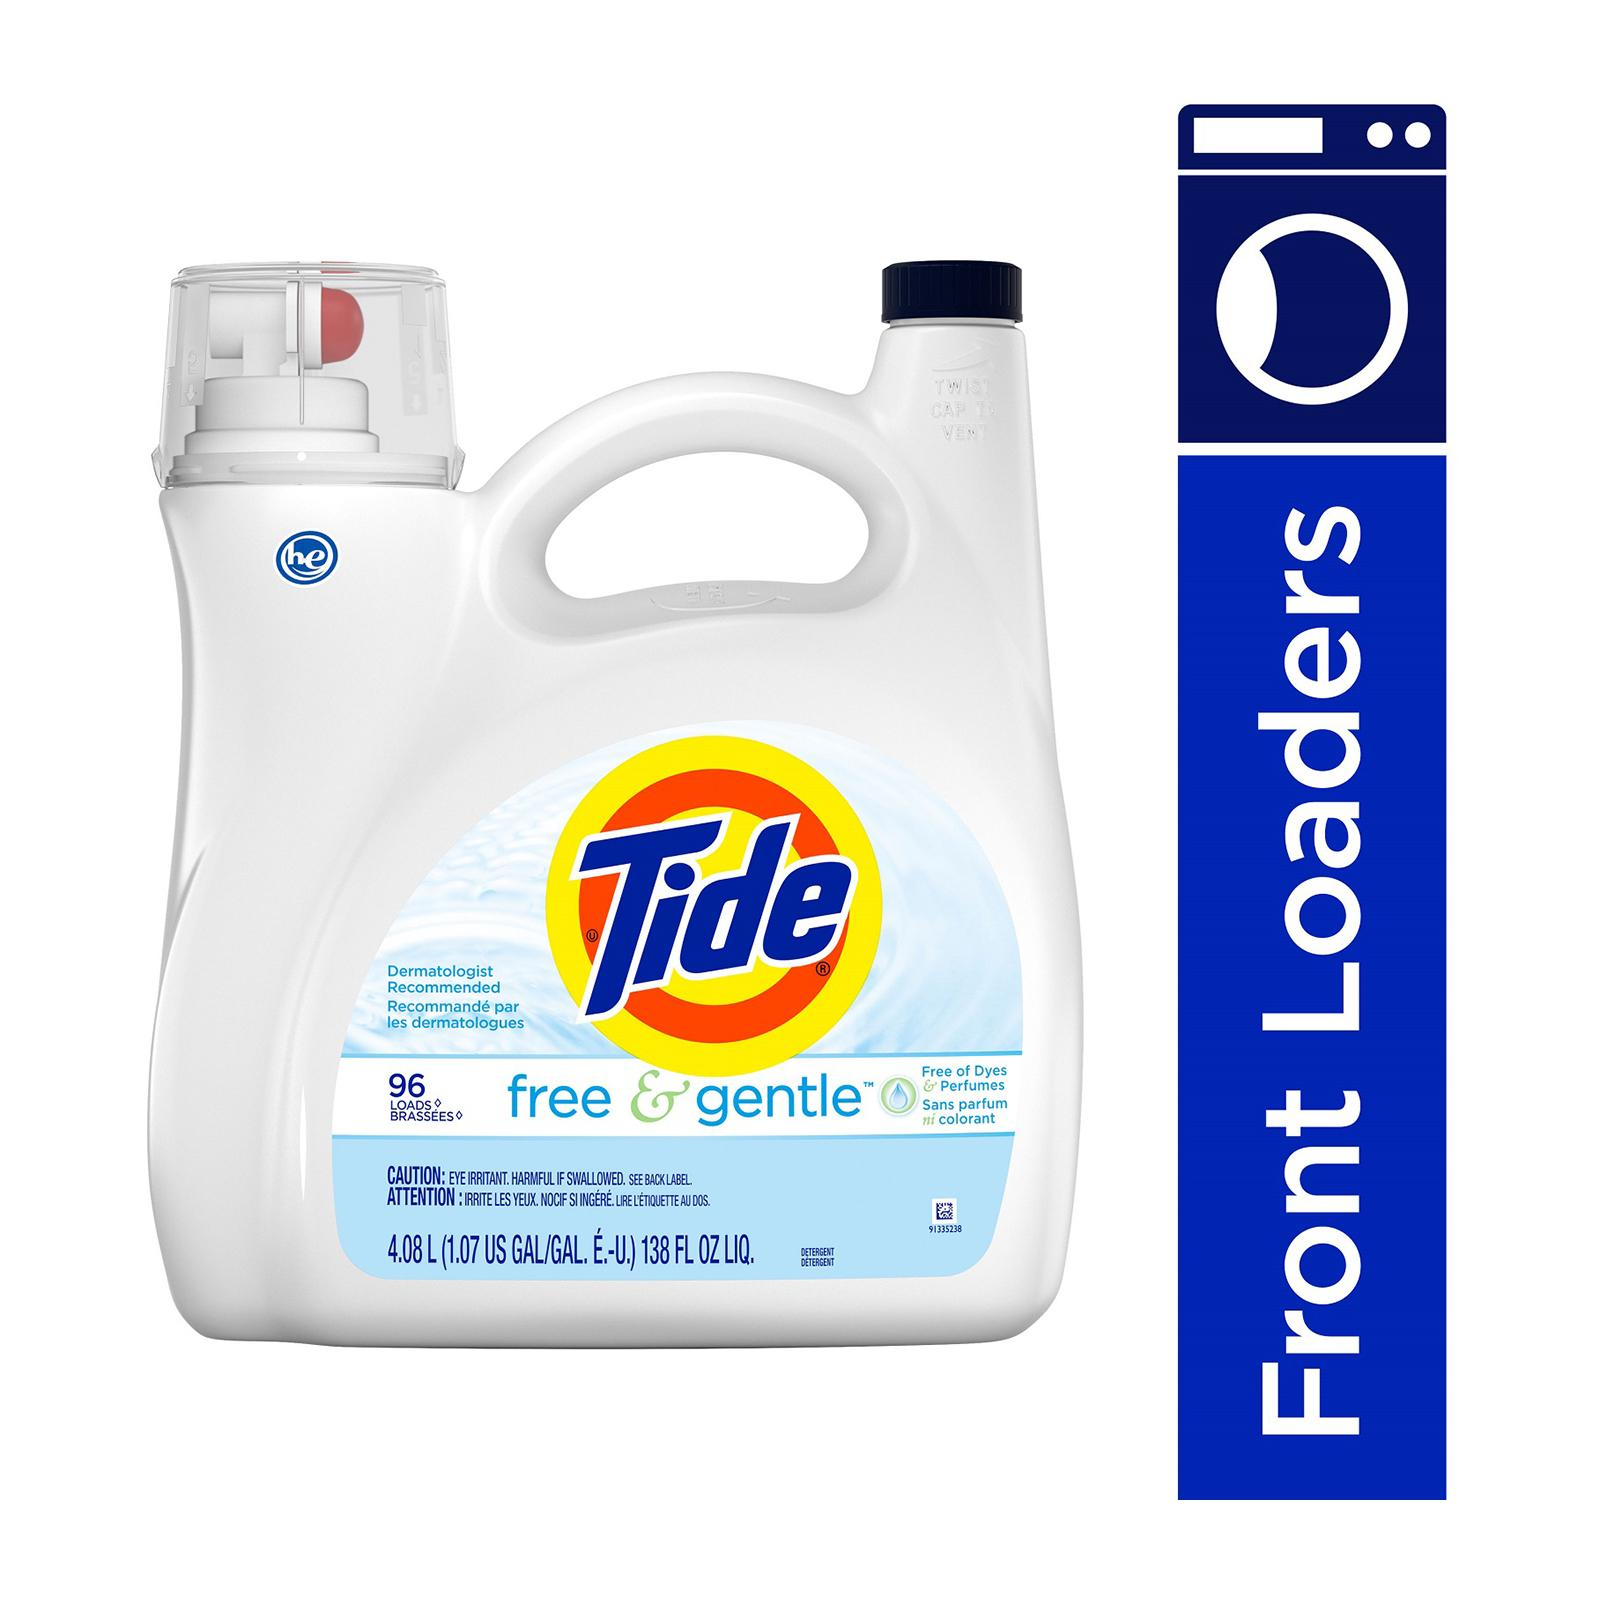 Tide Free And Gentle Liquid Laundry Detergent 4.08L